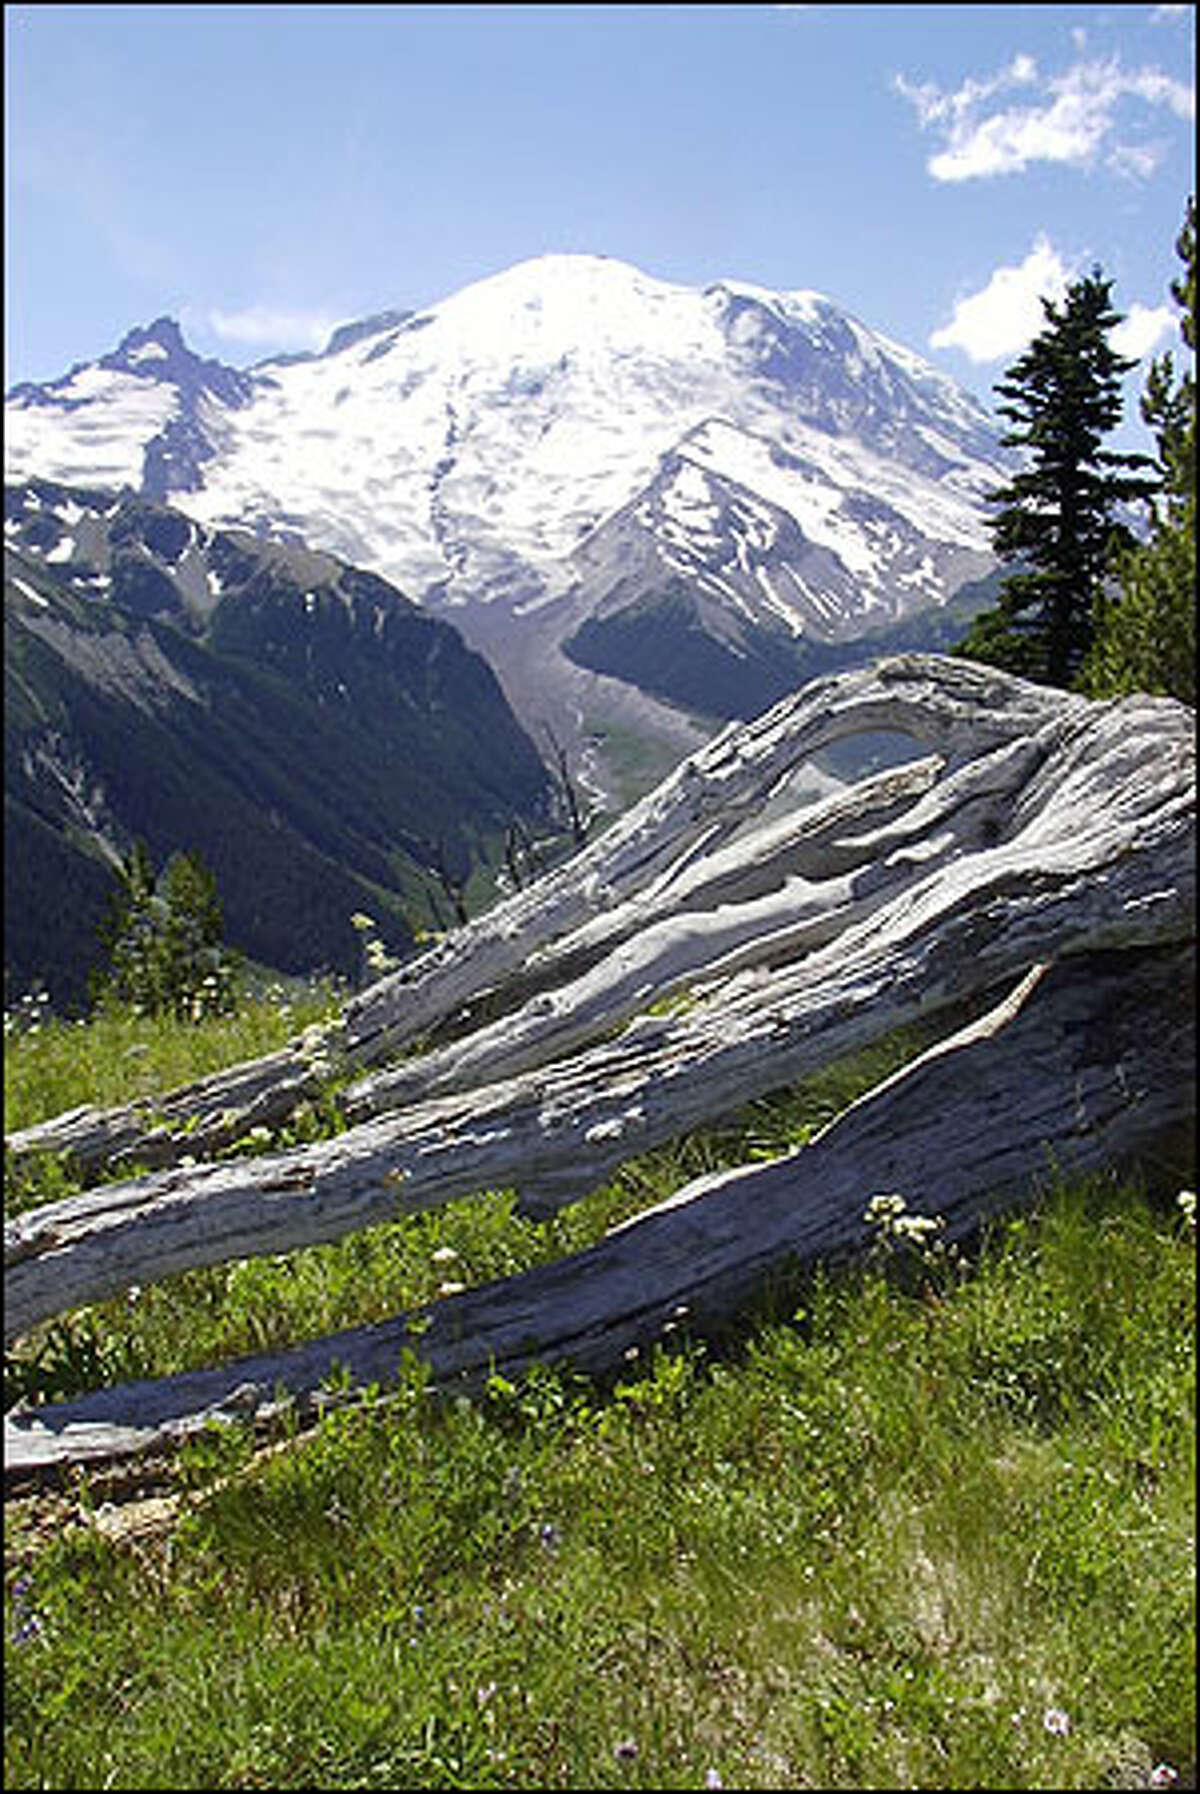 Mount Rainier and the gleaming expanse of the Emmons Glacier fill the horizon in this view from a high-country meadow near Sunrise.